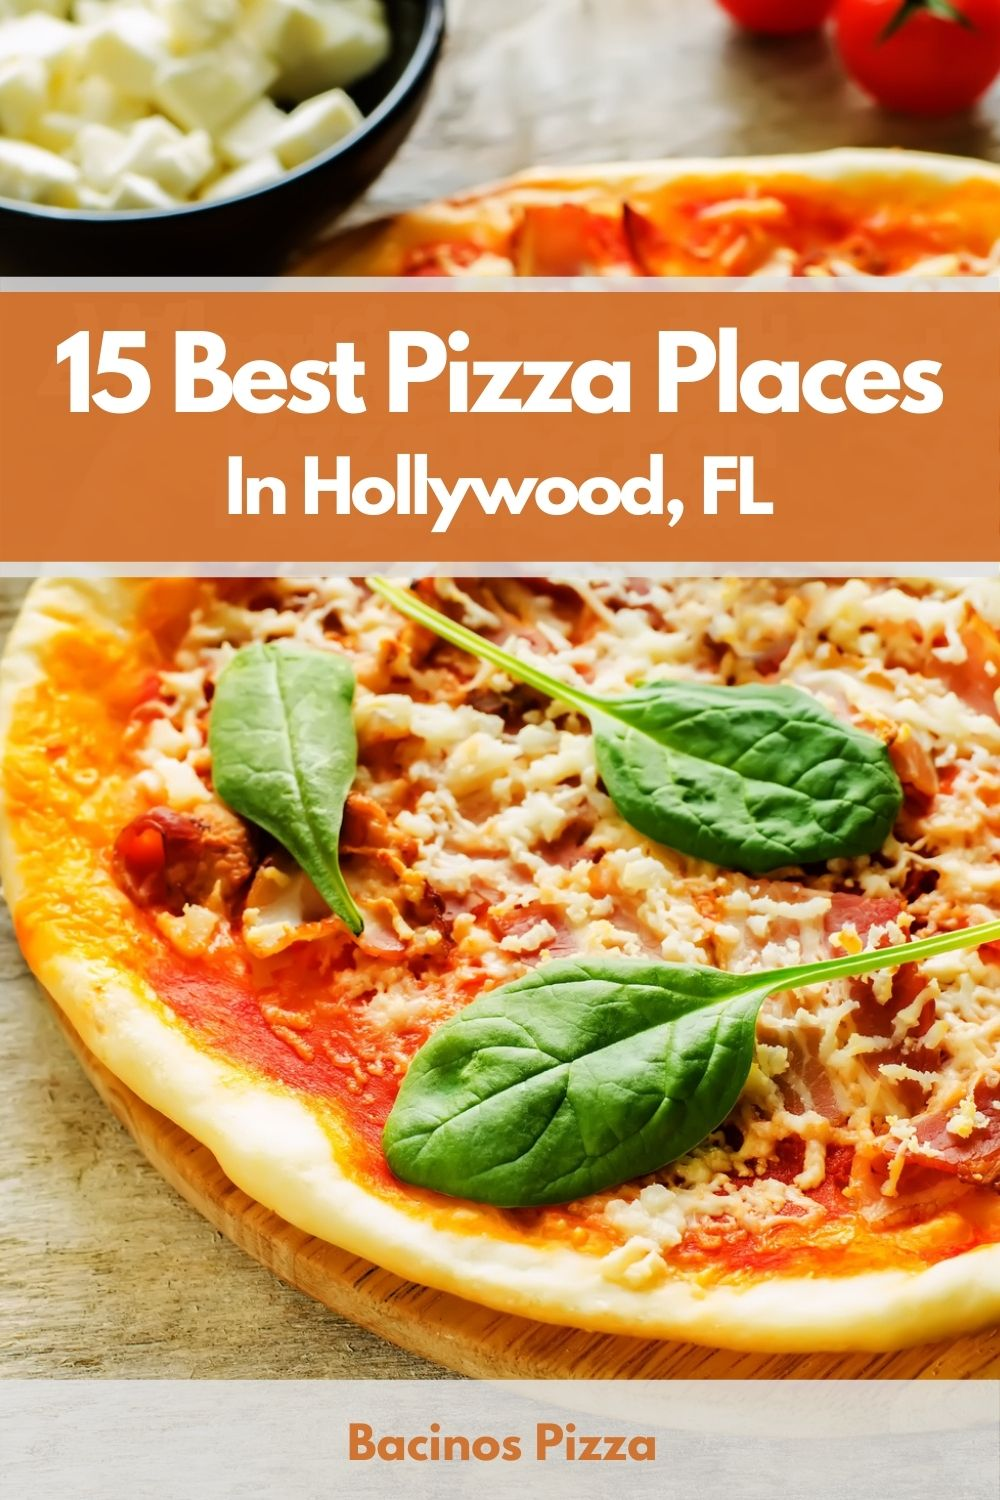 15 Best Pizza Places In Hollywood, FL pin 2